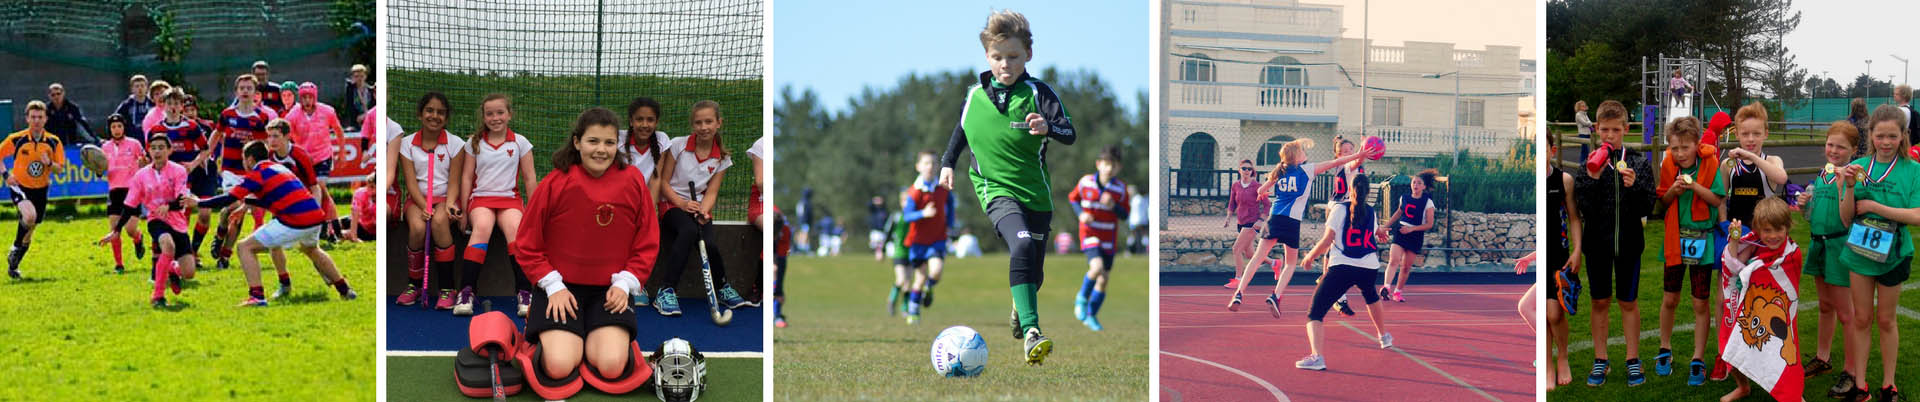 School Sport Tournaments, International School Events & Competitions